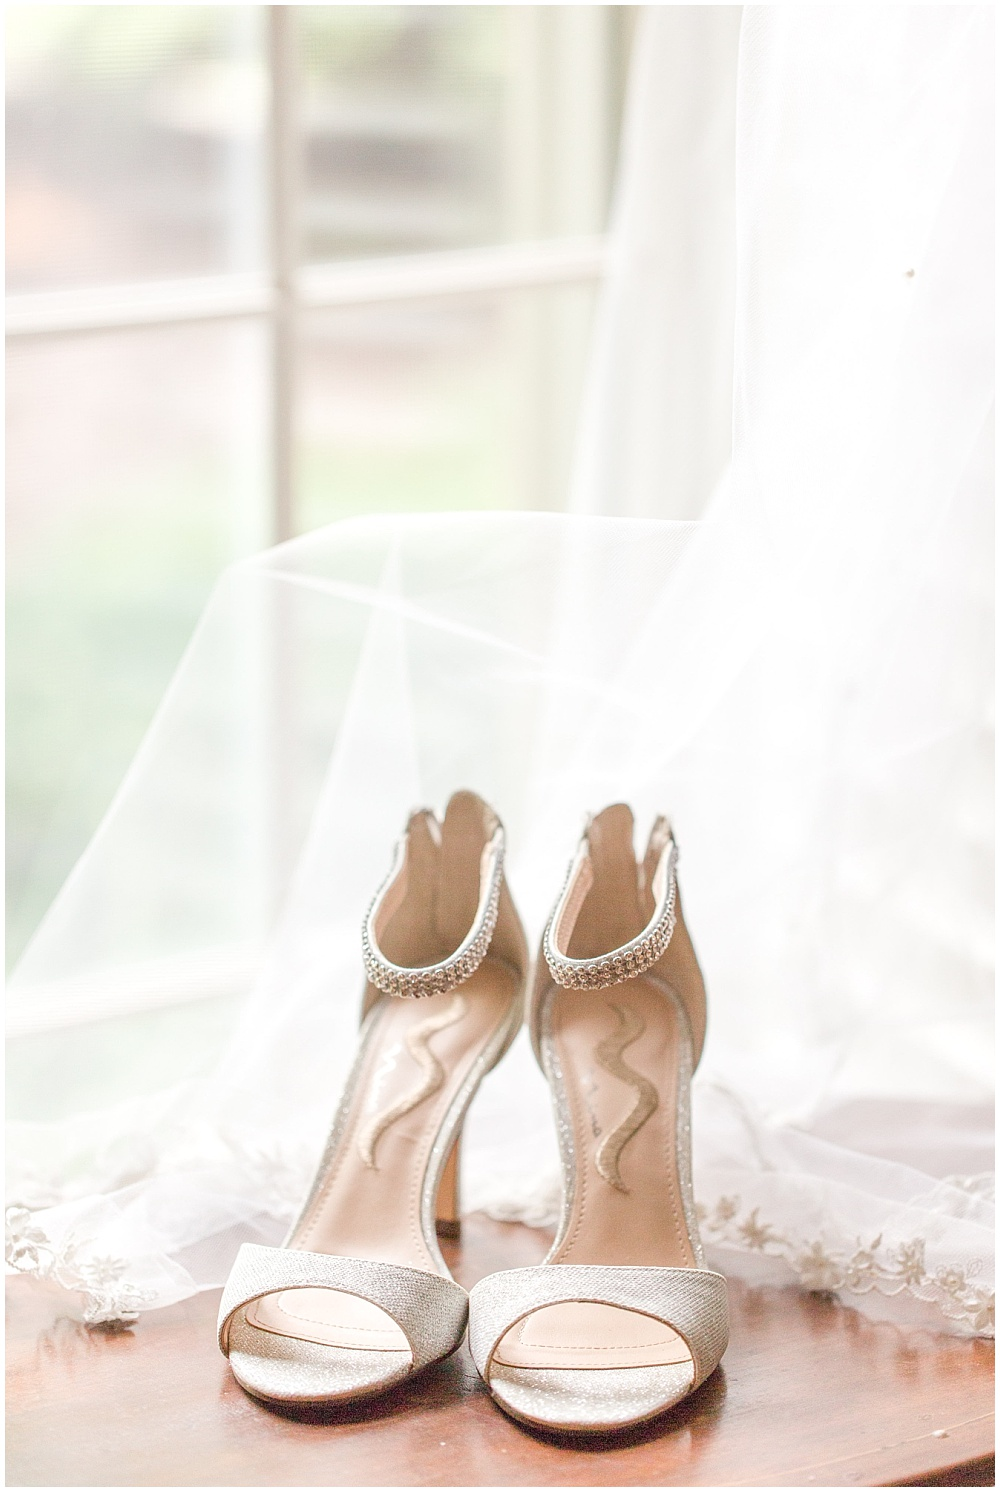 Bridal shoes and veil | Sami Renee Photography + Jessica Dum Wedding Coordination